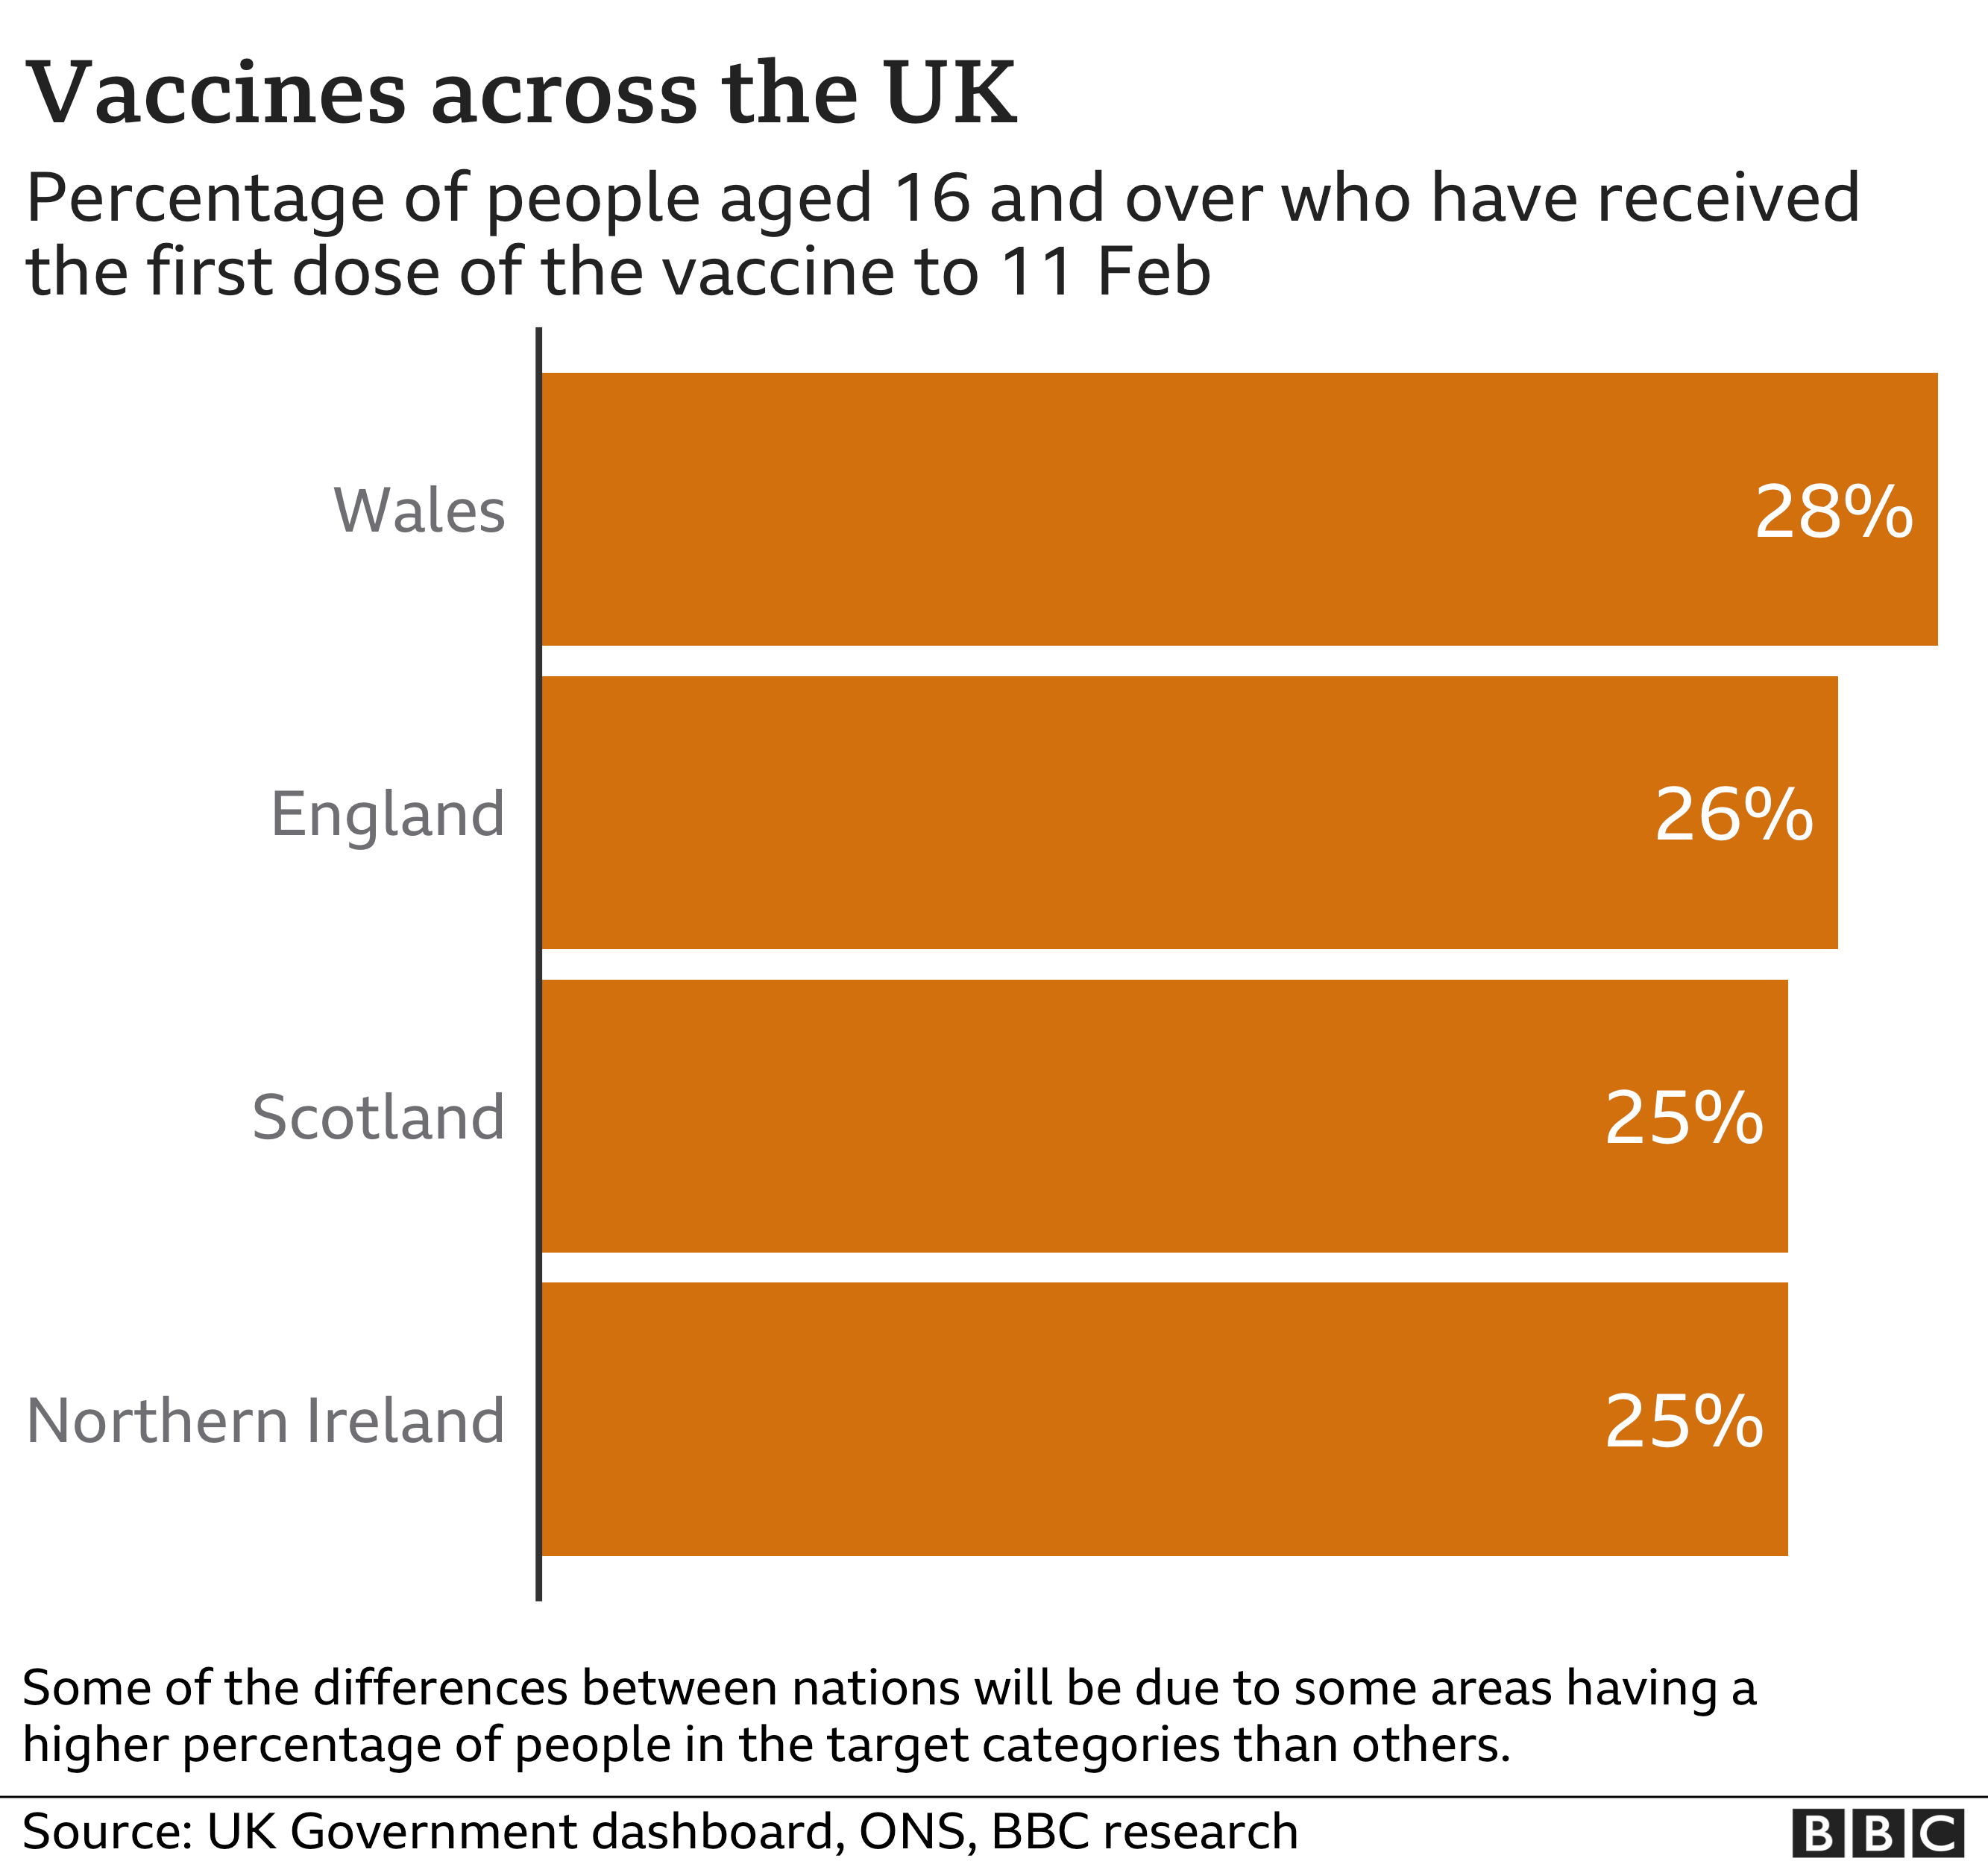 Percentage of over 16s vaccinated in all four nations of the UK